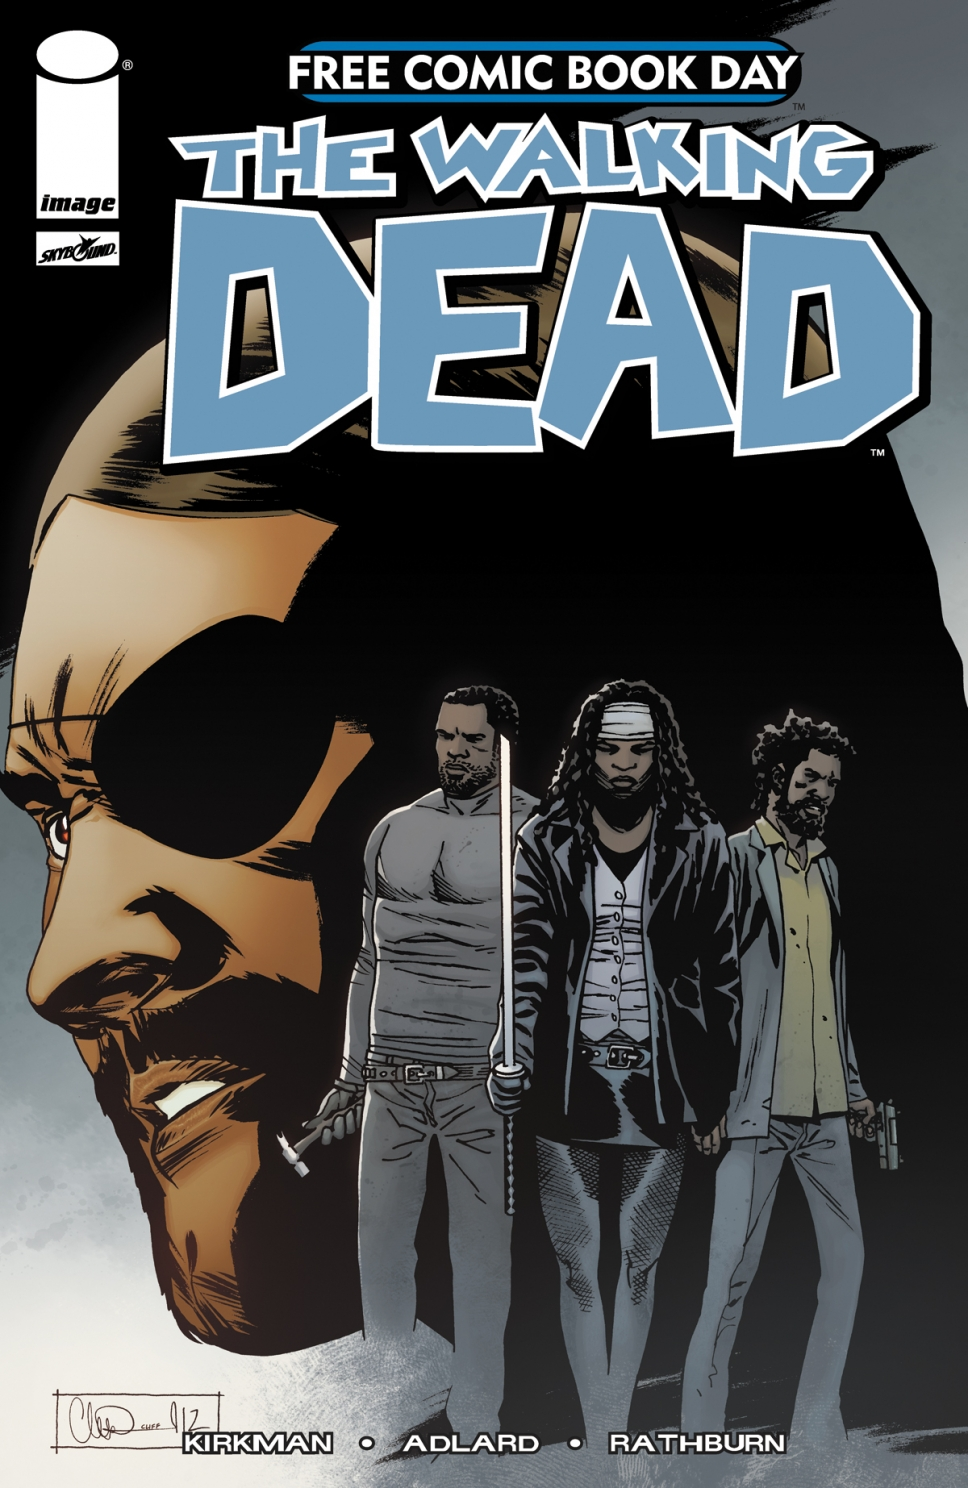 Free Comic Book Day 2013 (The Walking Dead) issue 0.00